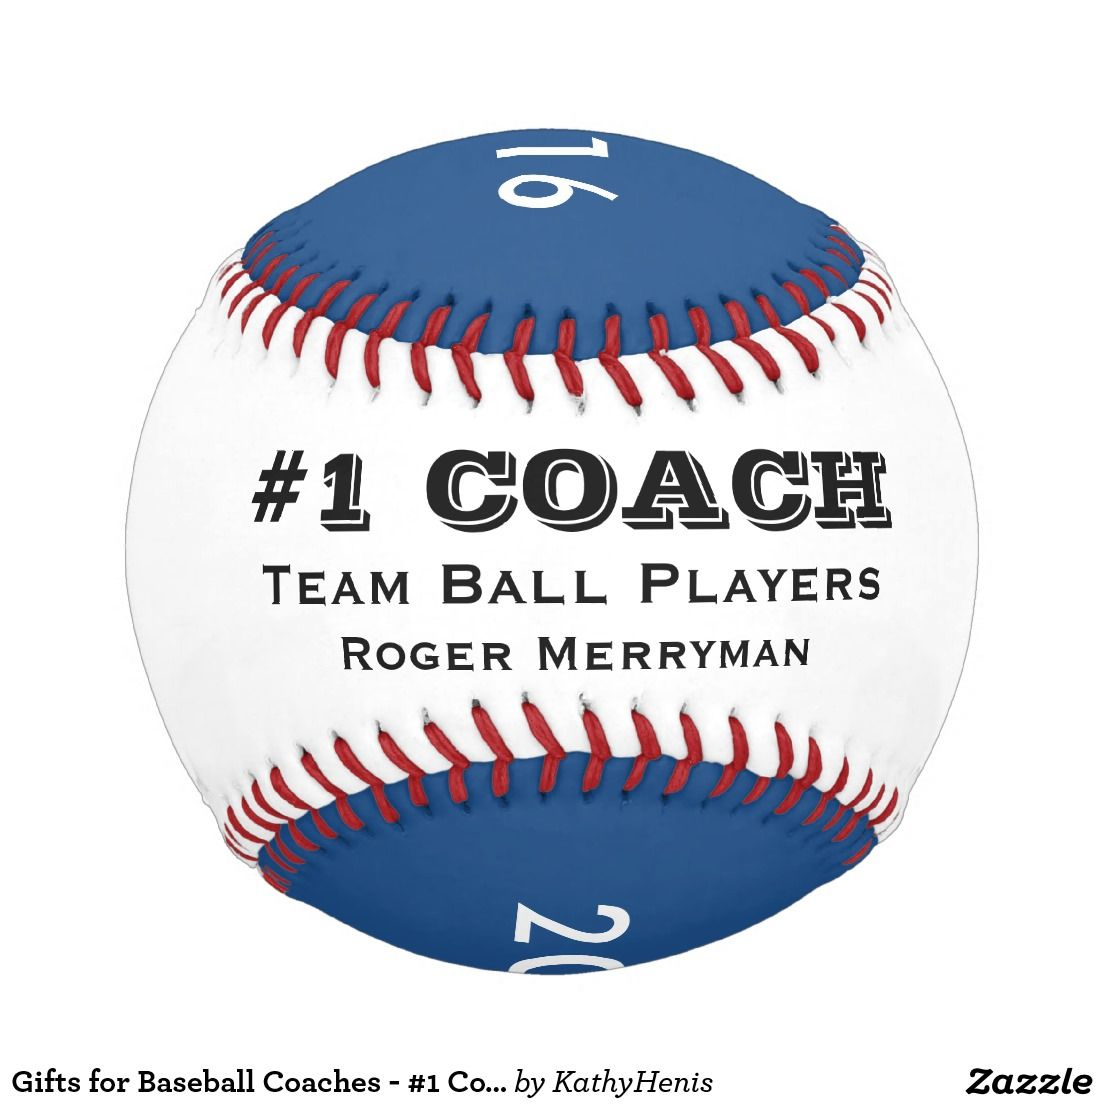 Gifts for Baseball Coaches - #1 Coach in Blue